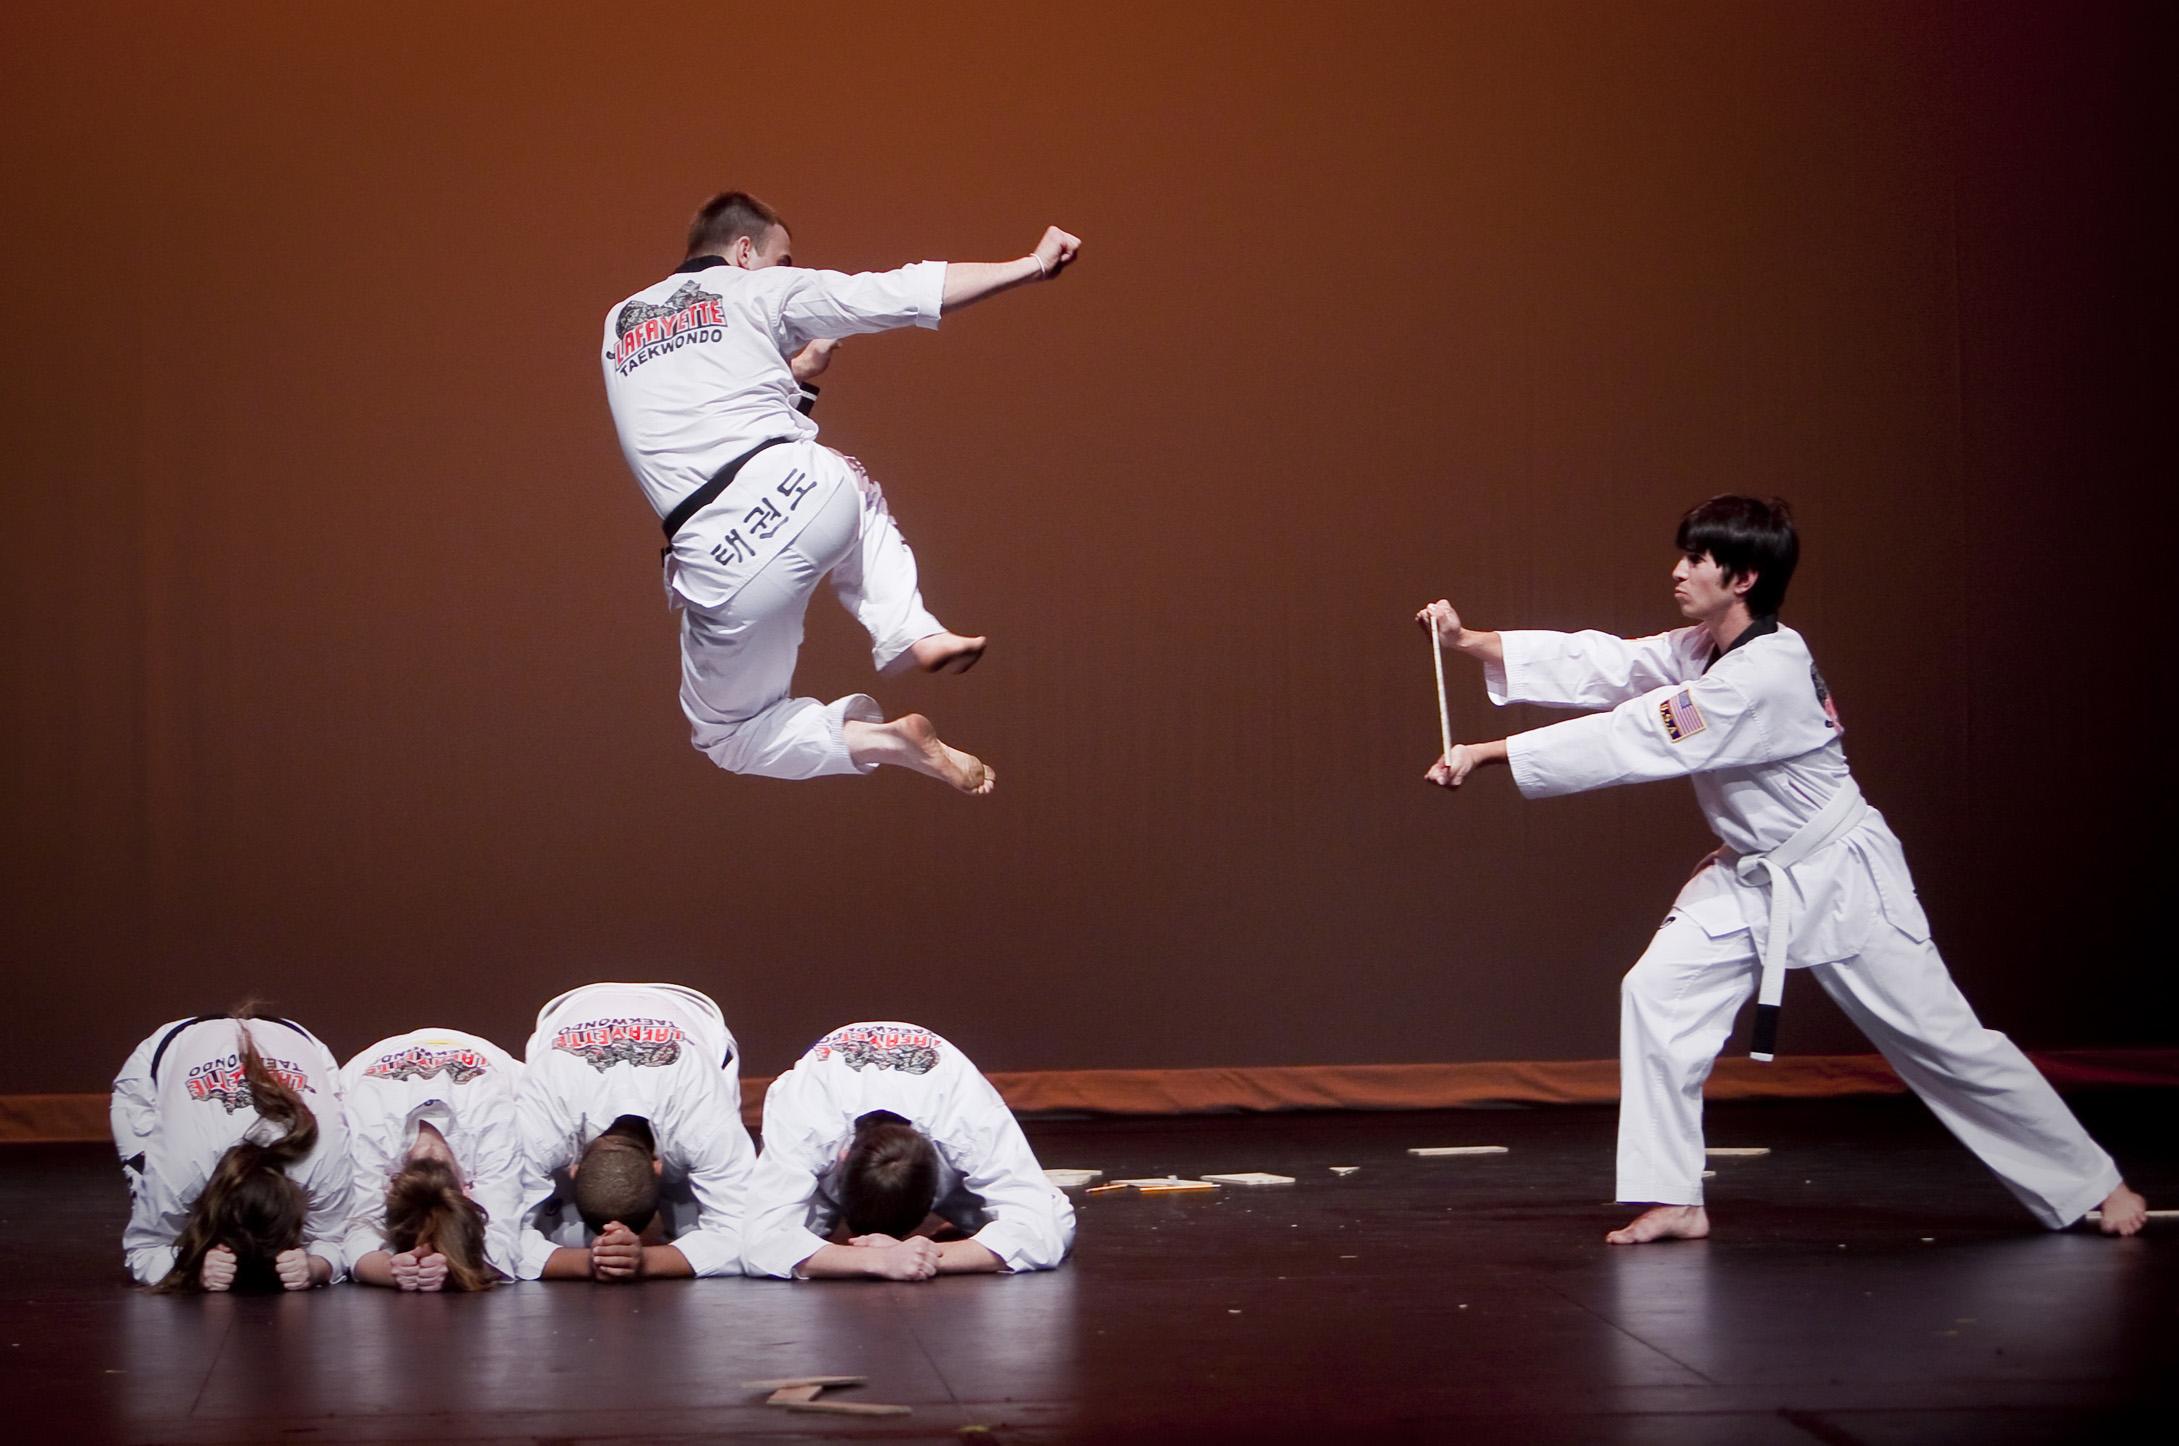 aerobic exercises tae kwon do and tae boxing The name tae bo is a portmanteau of tae kwon do and boxing 5 tae bo also includes aerobic exercises intended to strengthen all muscles of the body with basic.